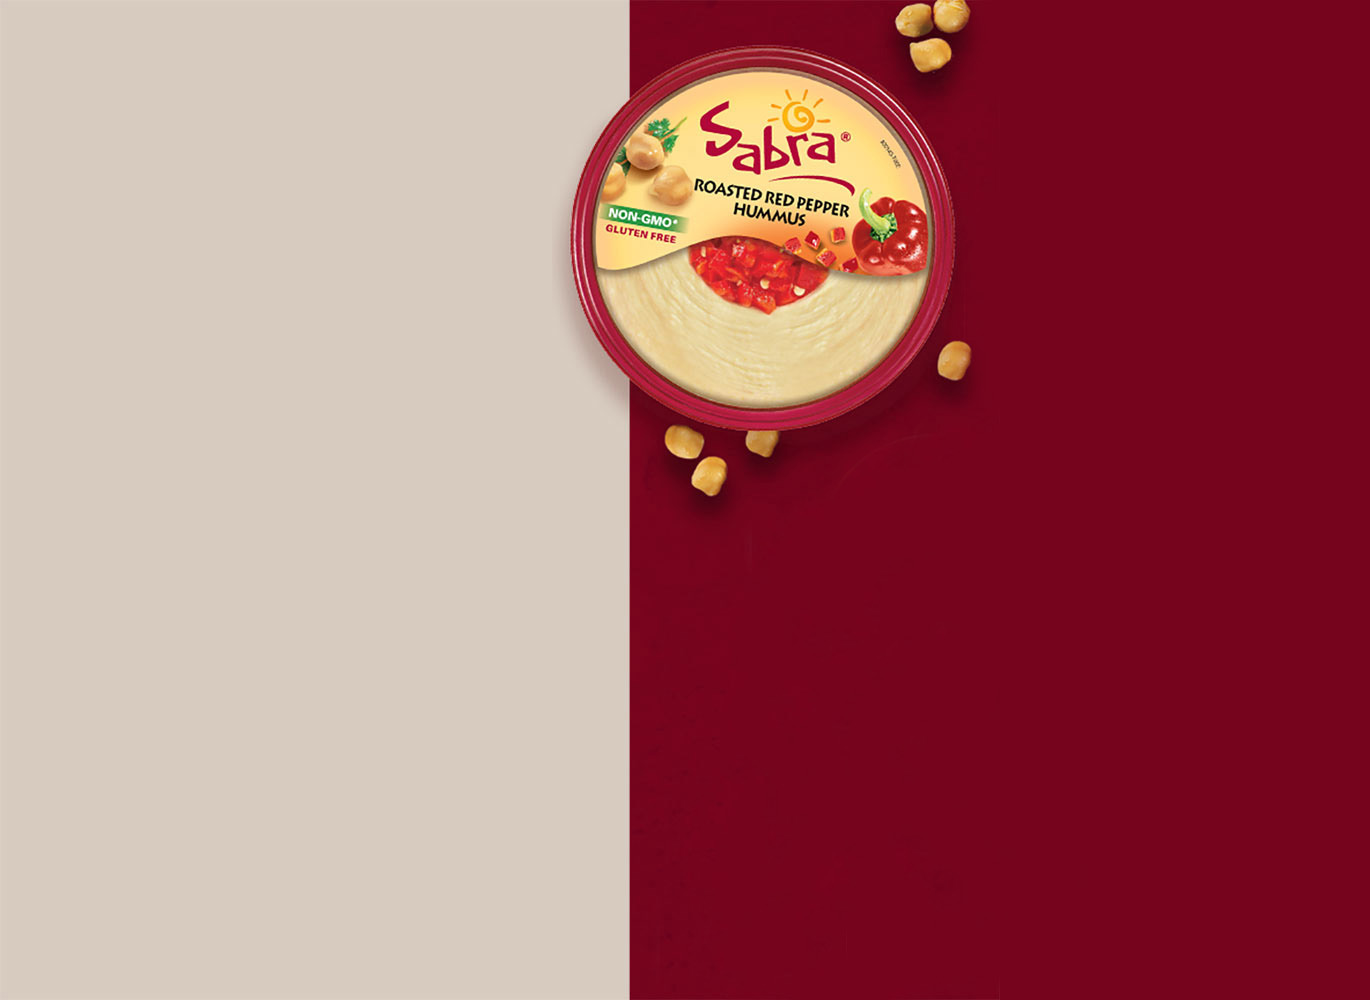 Sabra Hummus Recalled for Possible Listeria Contamination